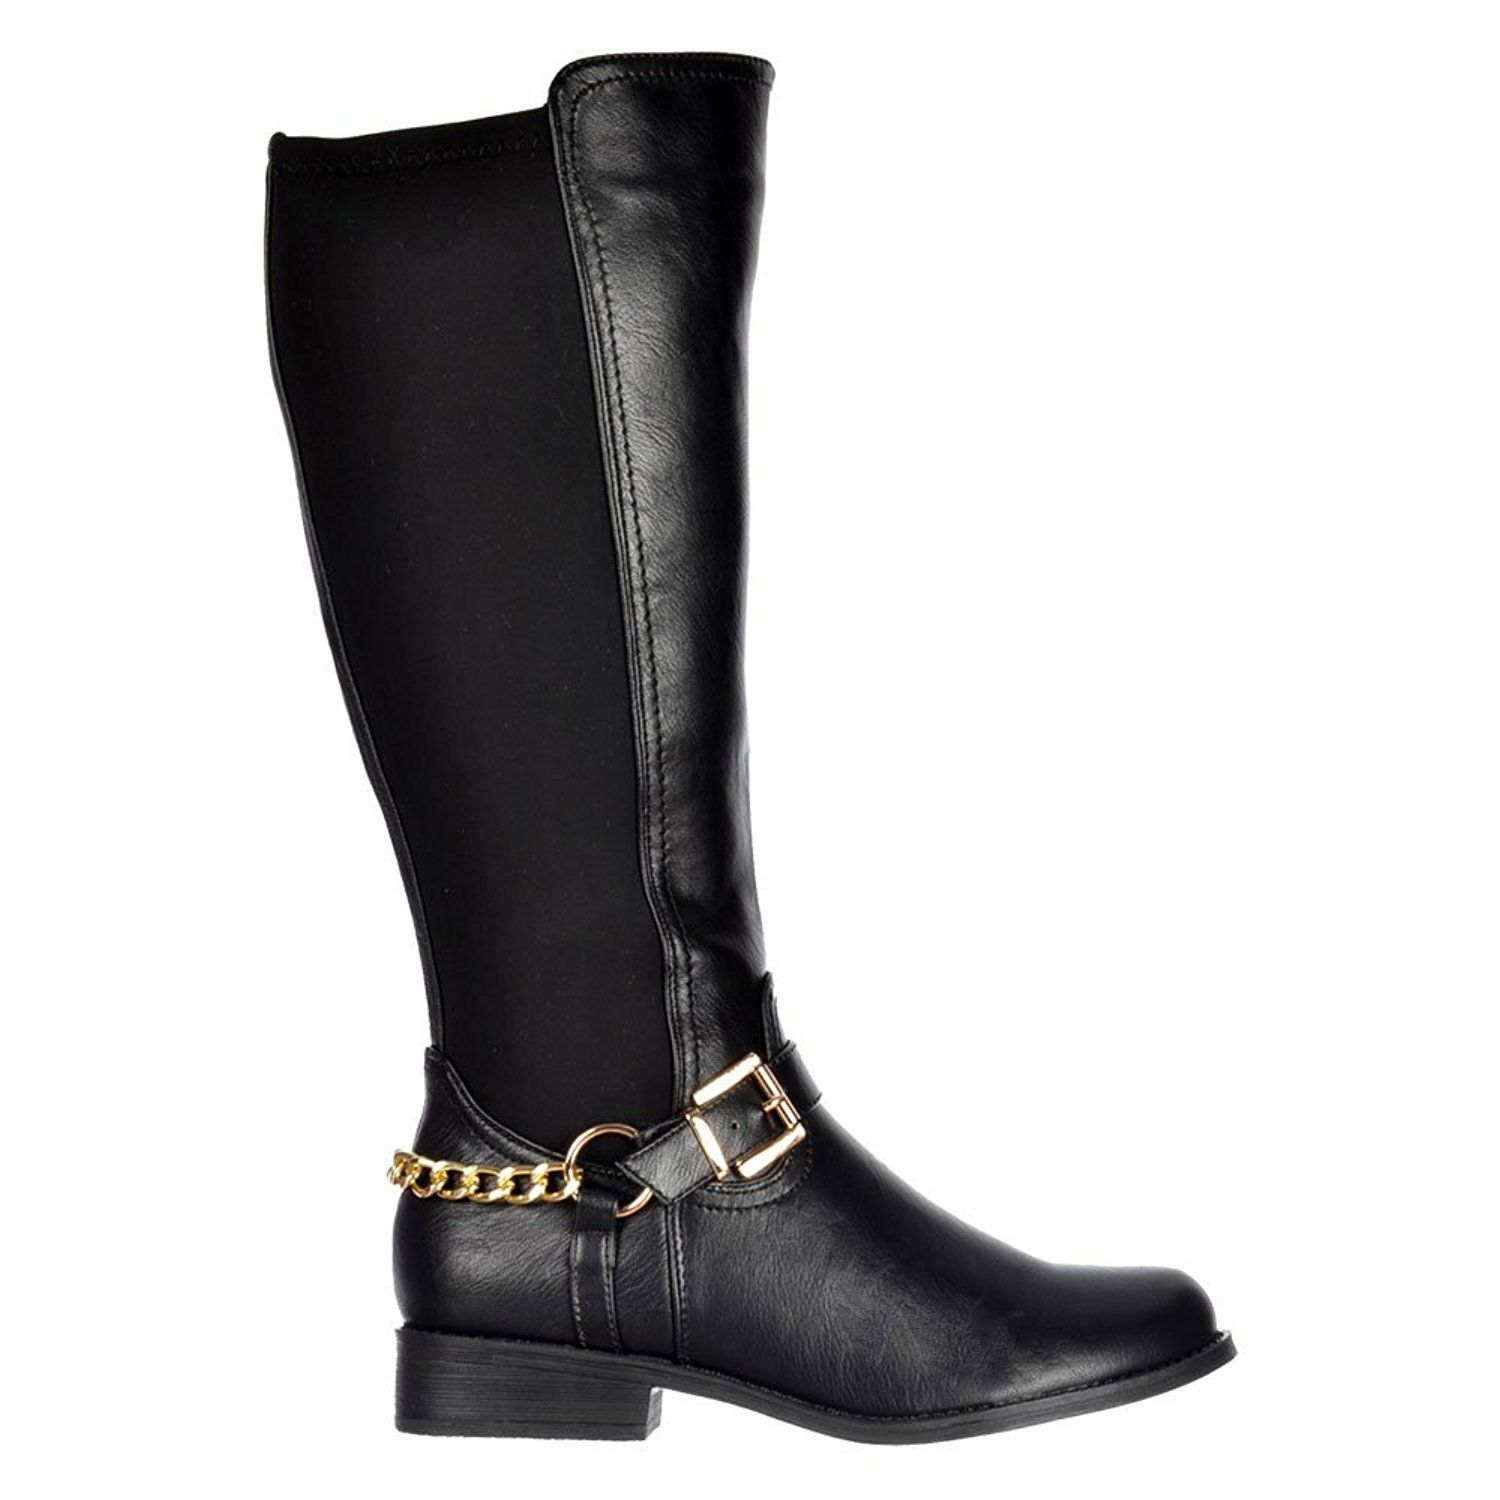 fda72a8d254 Onlineshoe Women's Extra Wide Calf Stretch Knee High Flat Gold Buckle  Riding Boot -- Click image for more details.